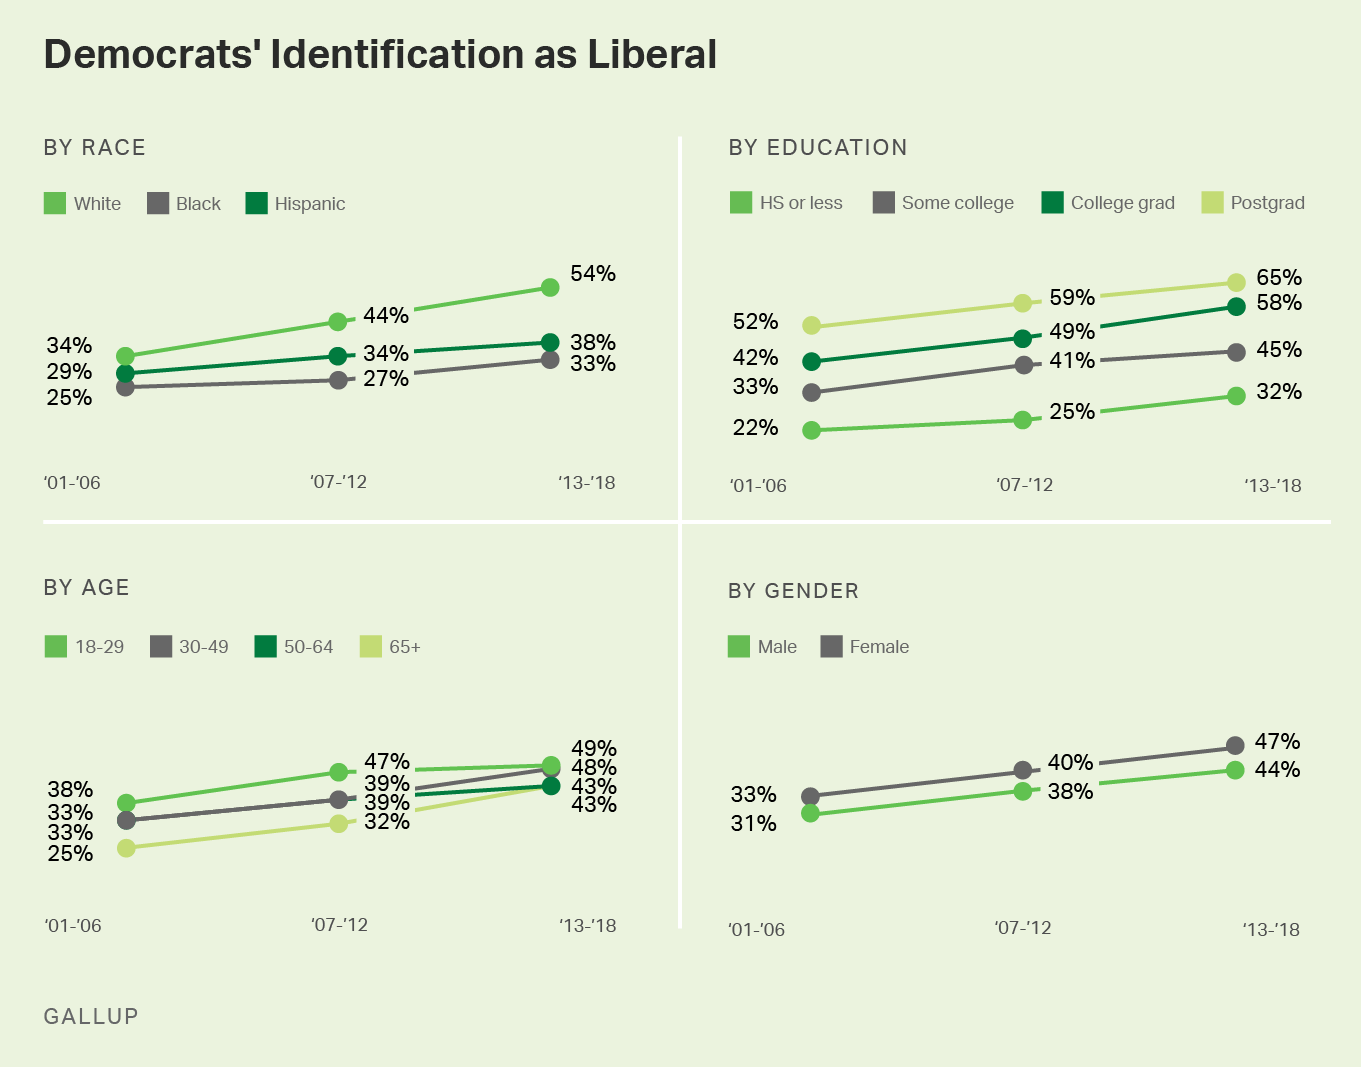 Small multiple graphs. A series of graphs depicting changes in Democrats identifying as liberal by key demographic group.